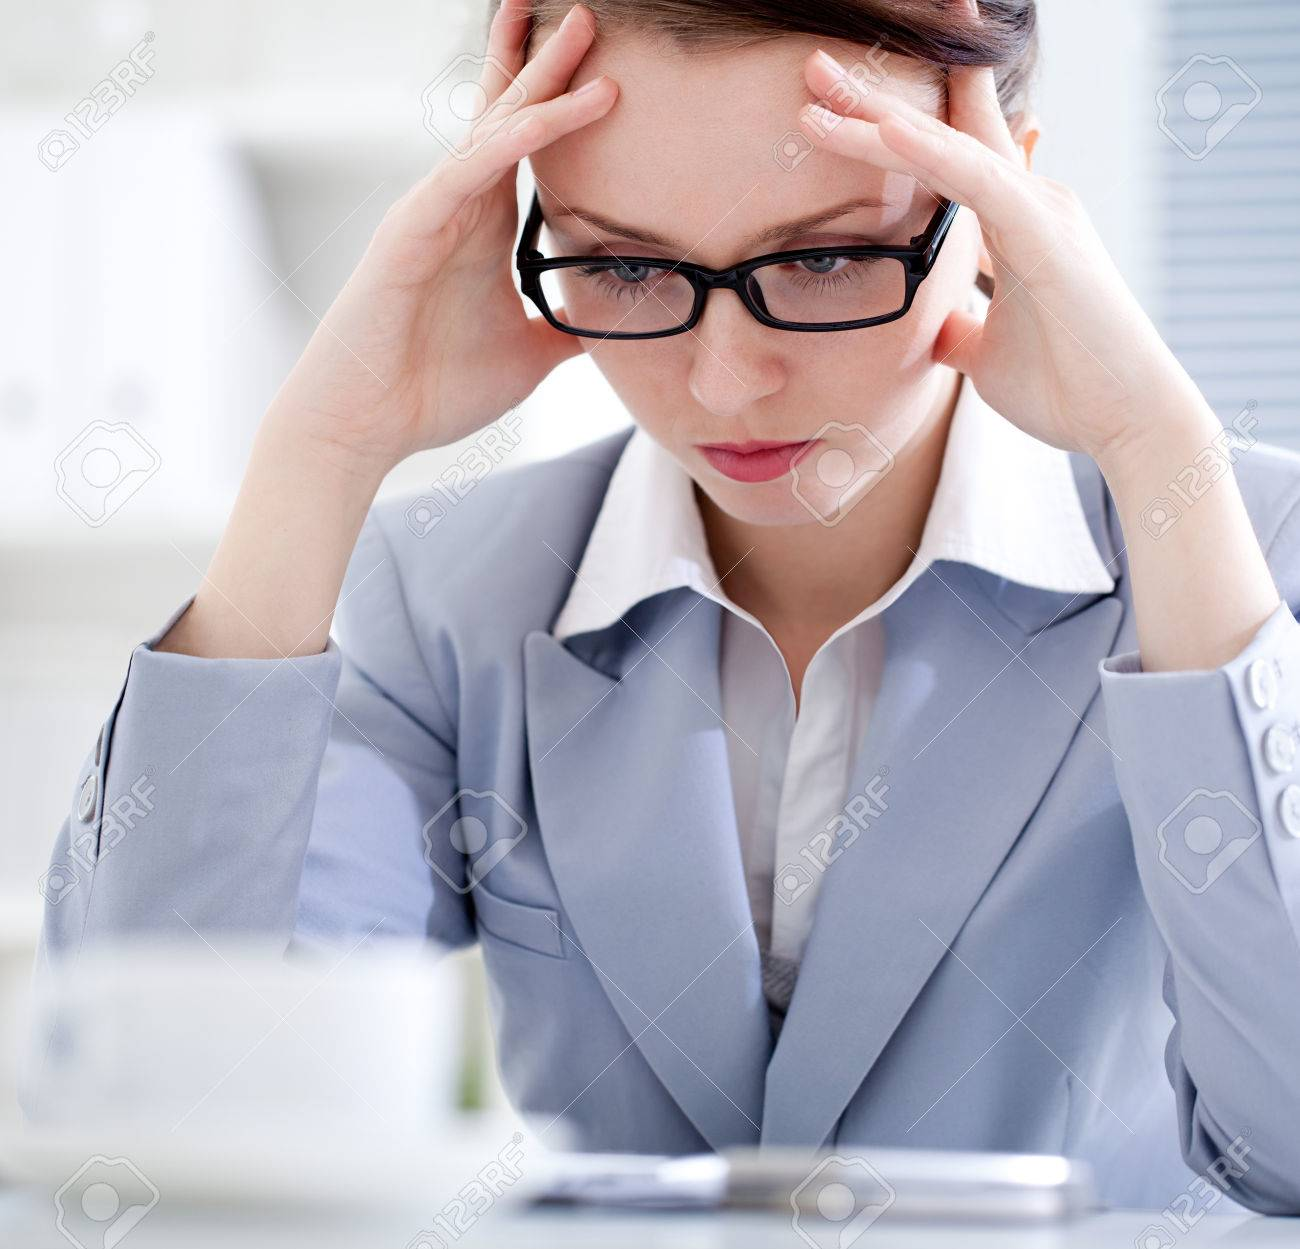 Portrait of exhausted businesswoman in office Stock Photo - 32268548